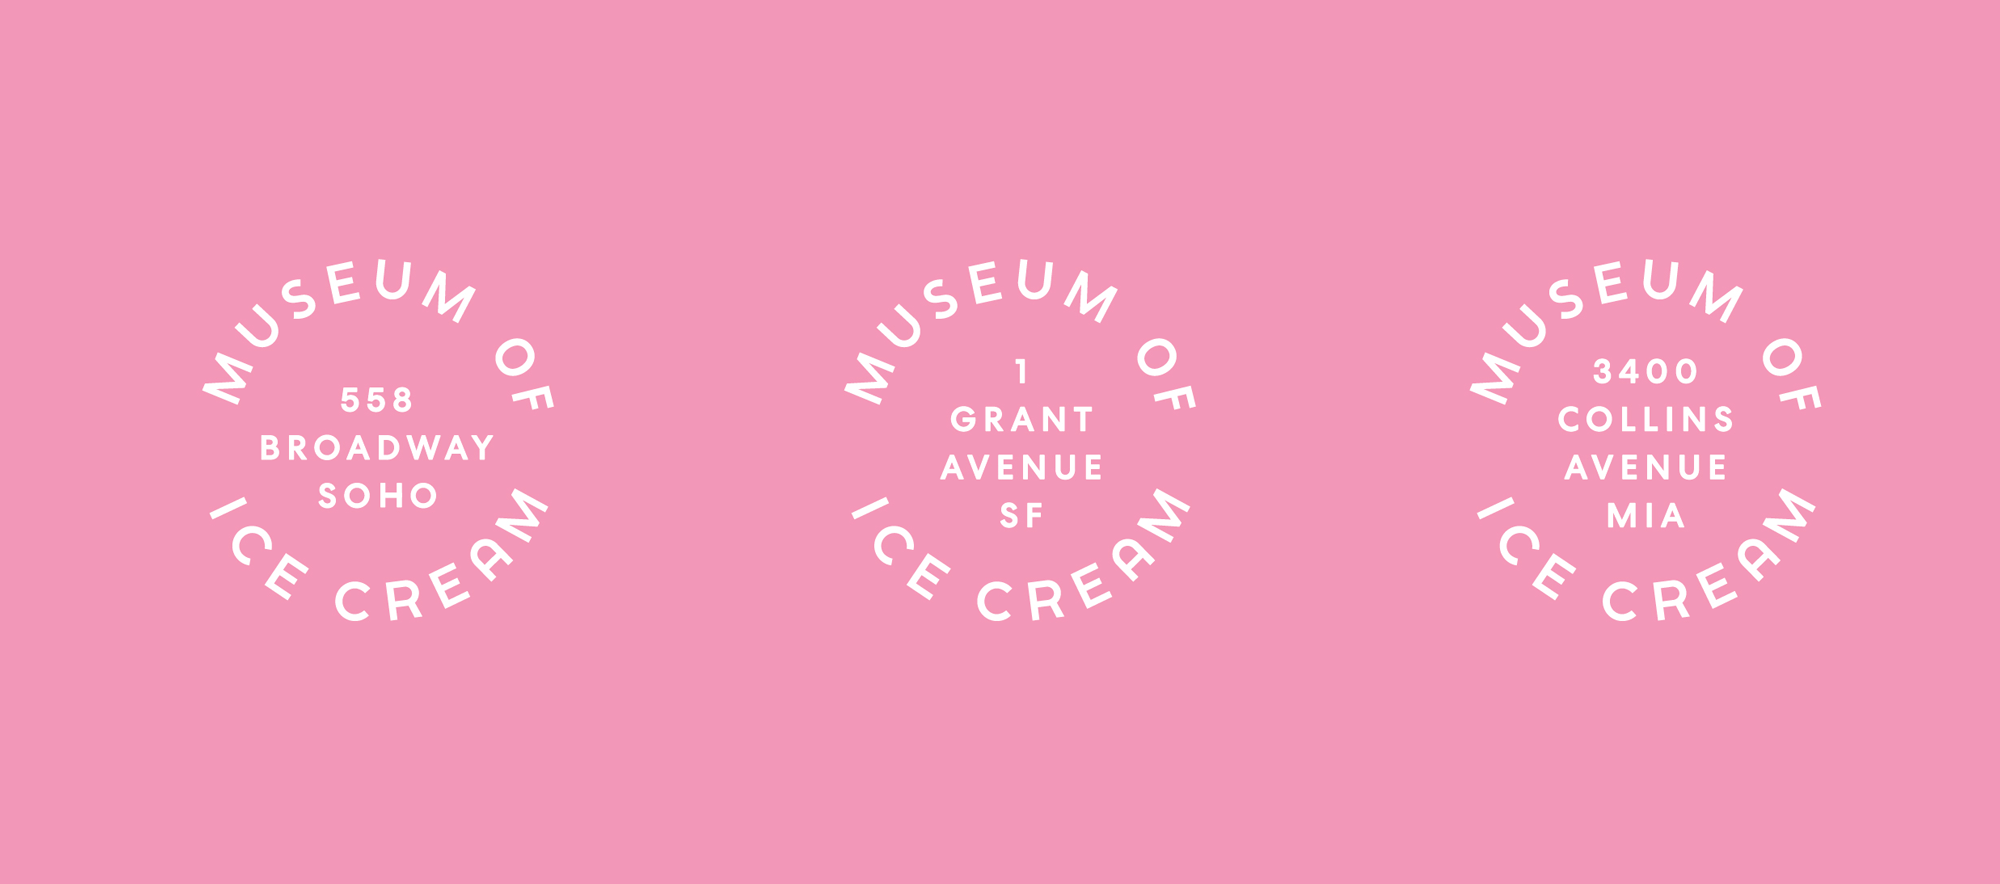 New Logo and Identity for Museum of Ice Cream by The Working Assembly